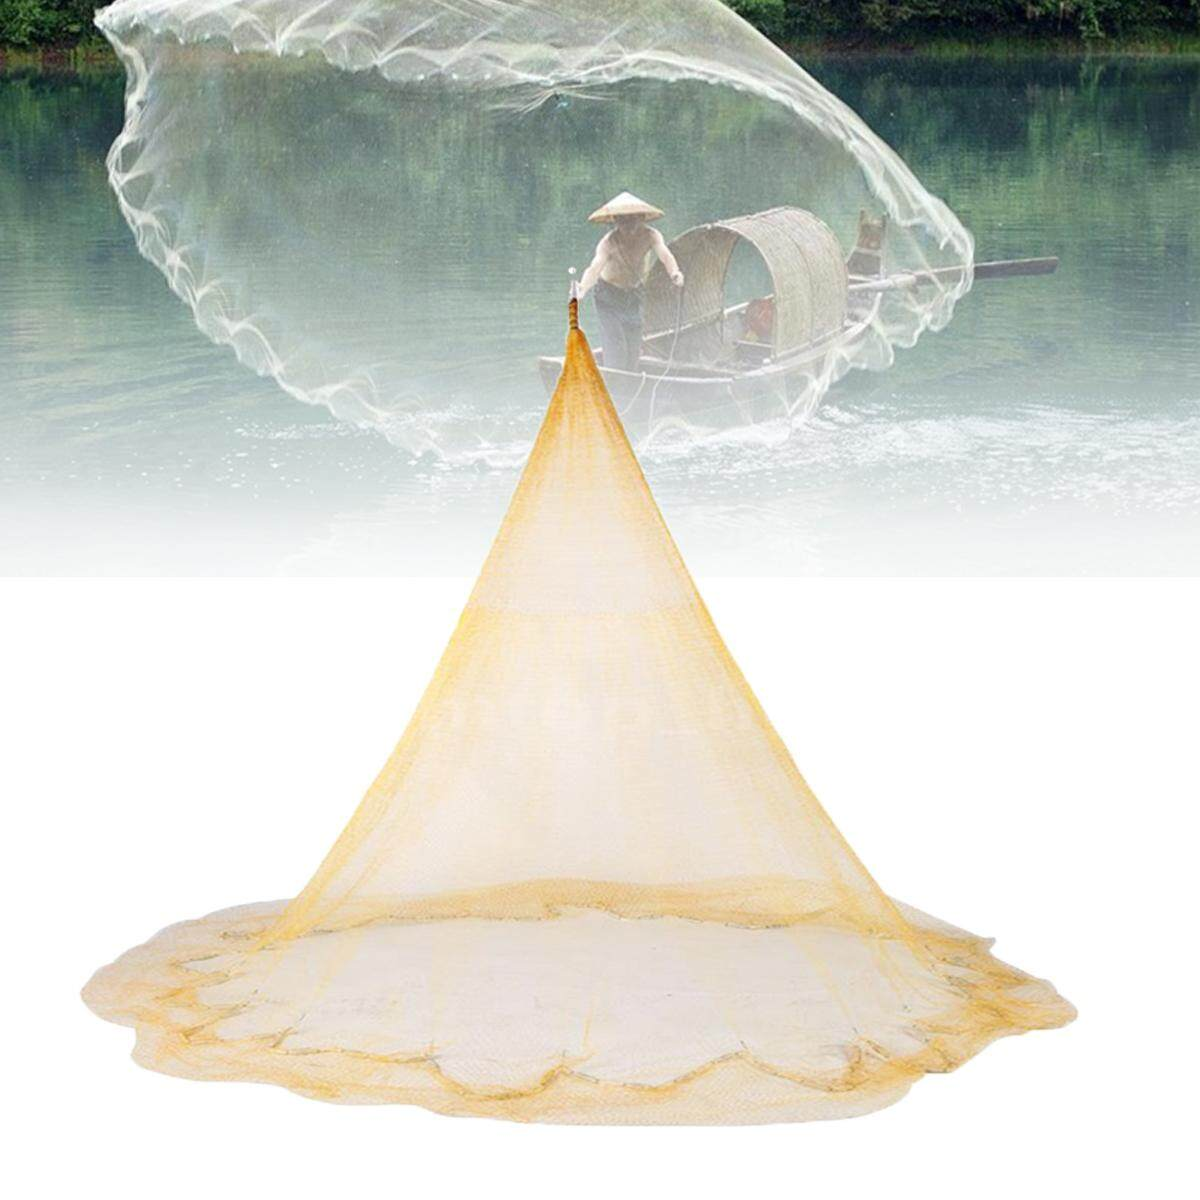 Sale 3 X 4M Big Fishing Nylon Monofilament Fish Gill Net Easy Throw For Hand Casting Intl Not Specified Original